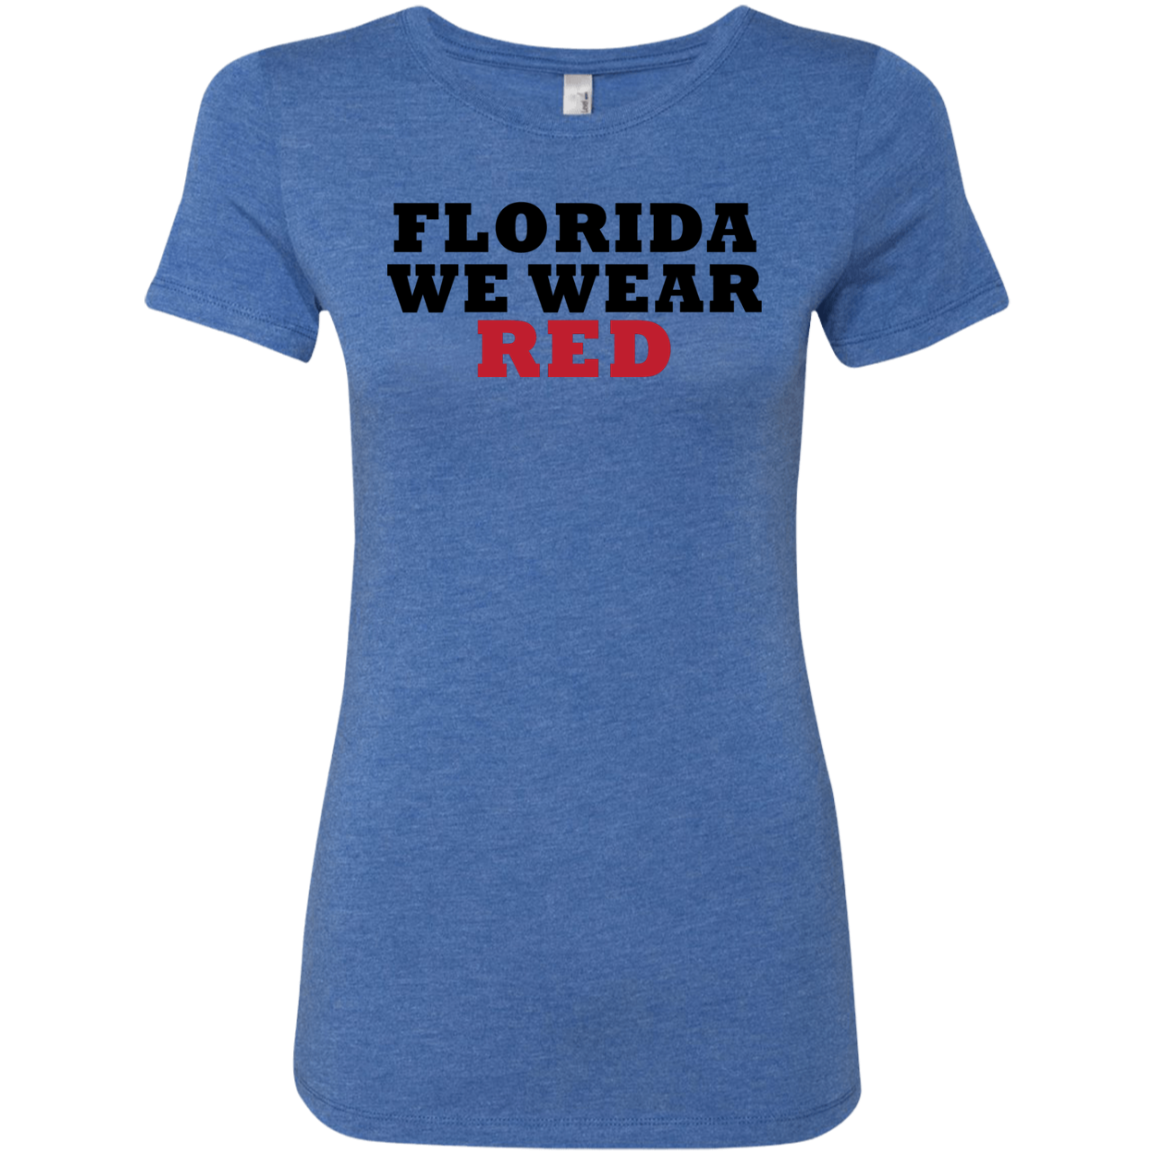 Florida We Wear Red Women's Classic Tee